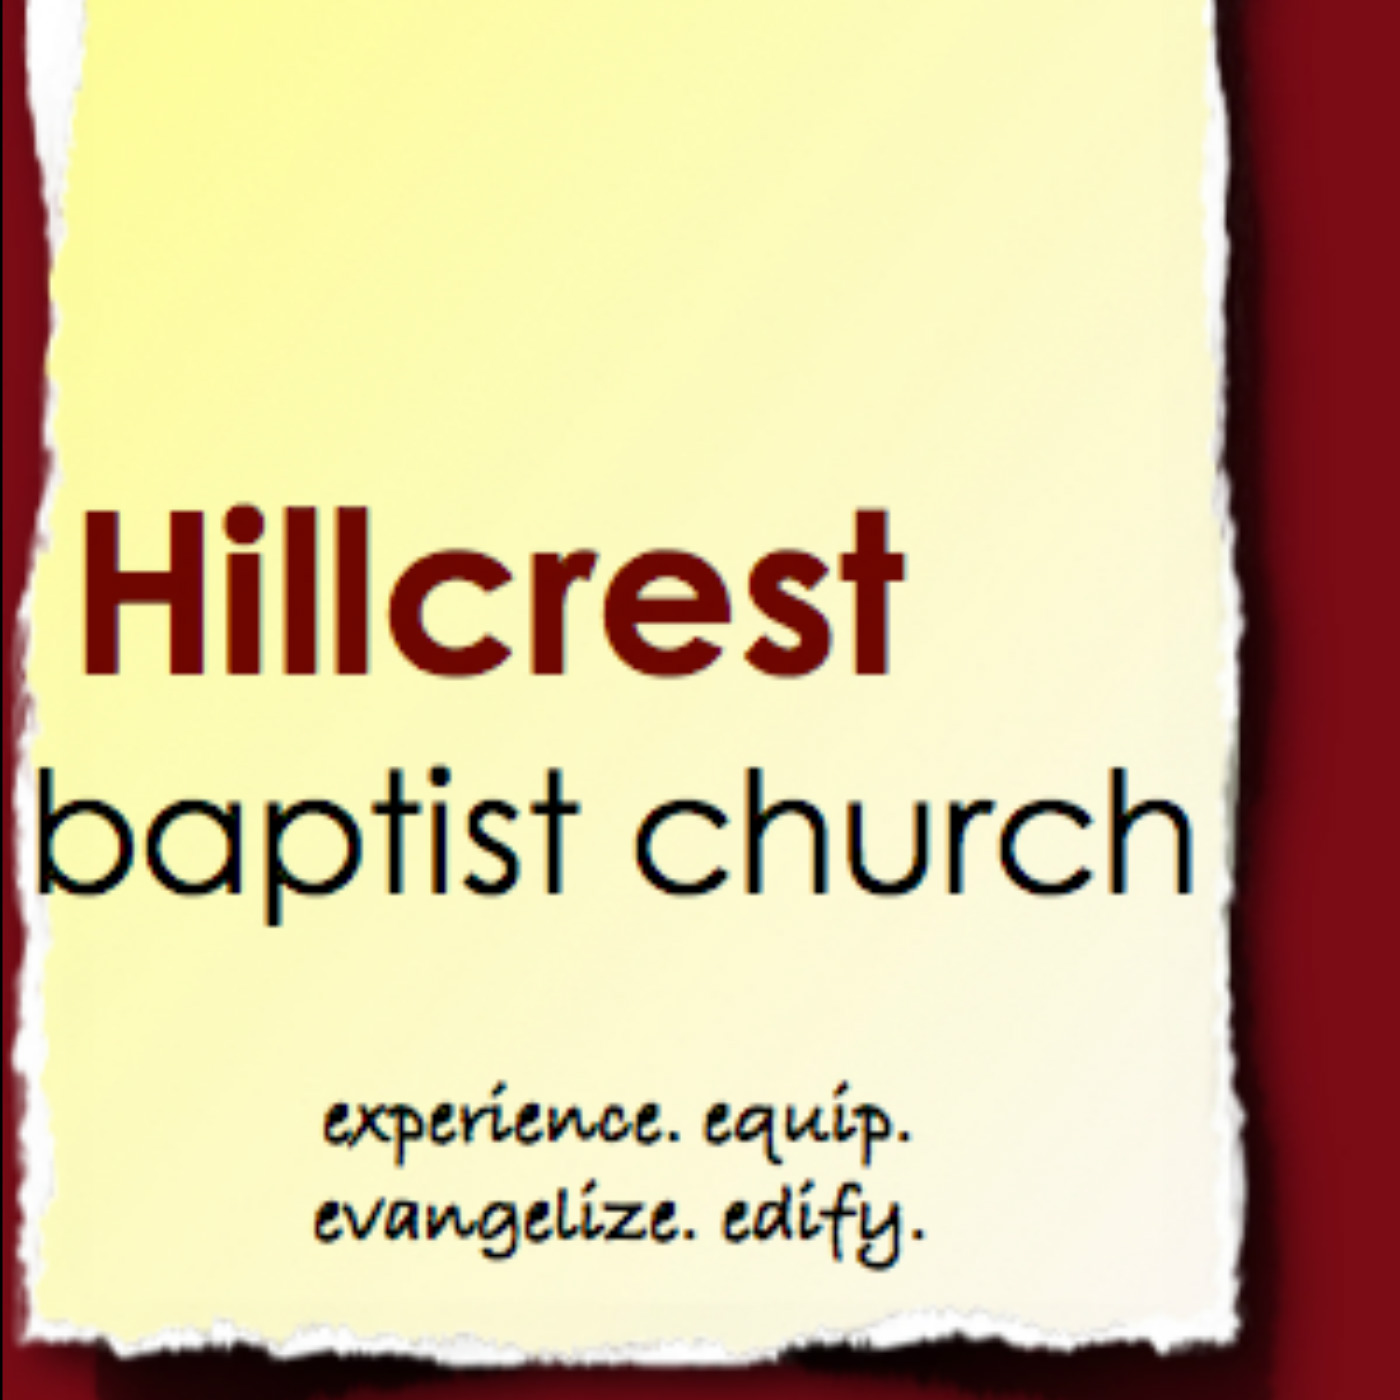 Hillcrest Baptist Church - Temple Hills, MD